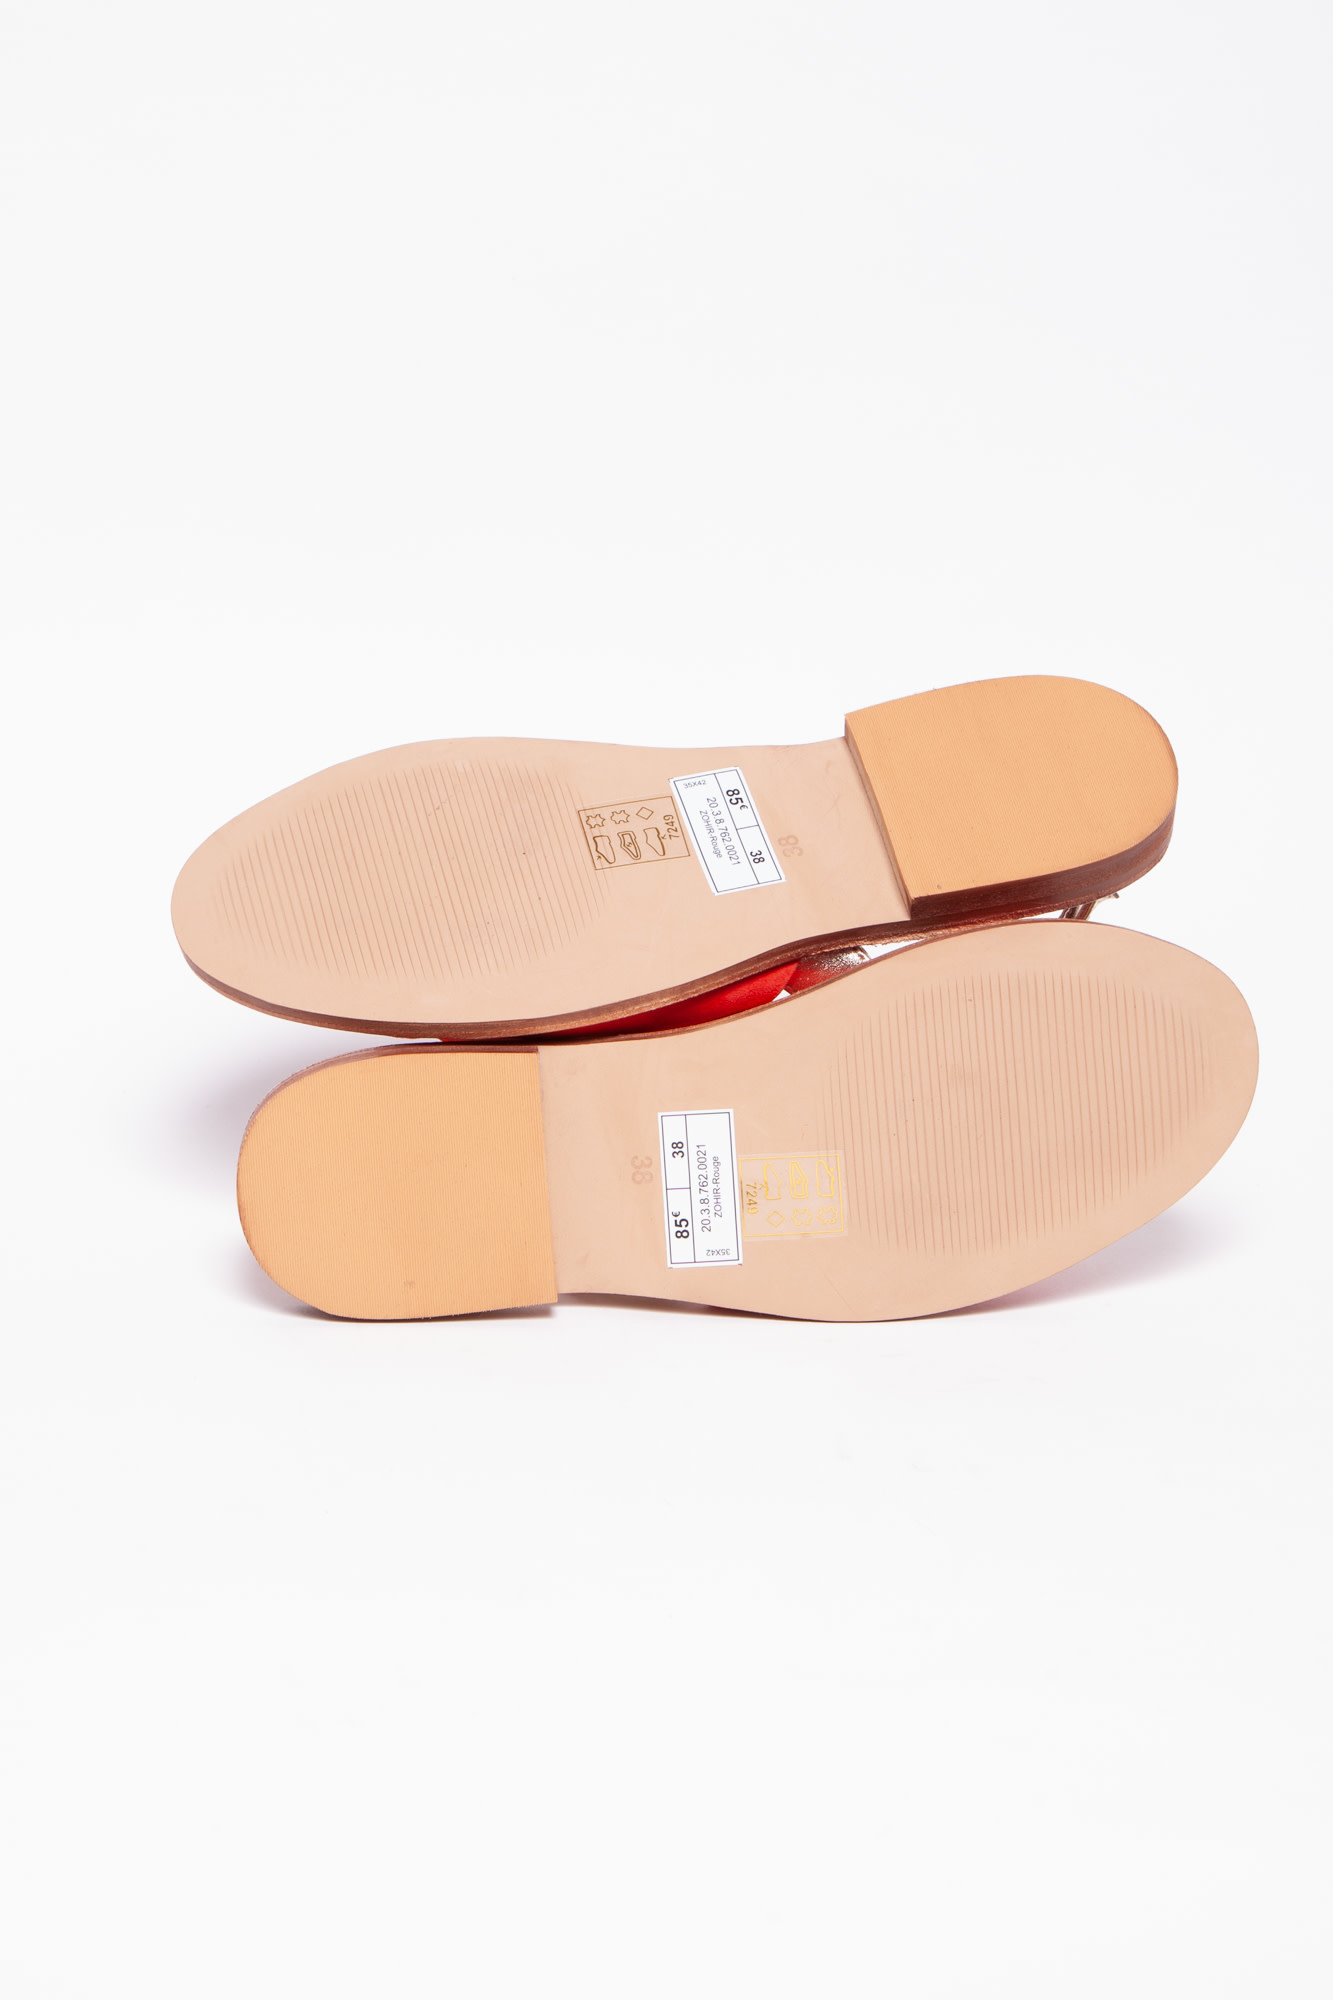 Bocage RED AND GOLD SANDALS - NEW